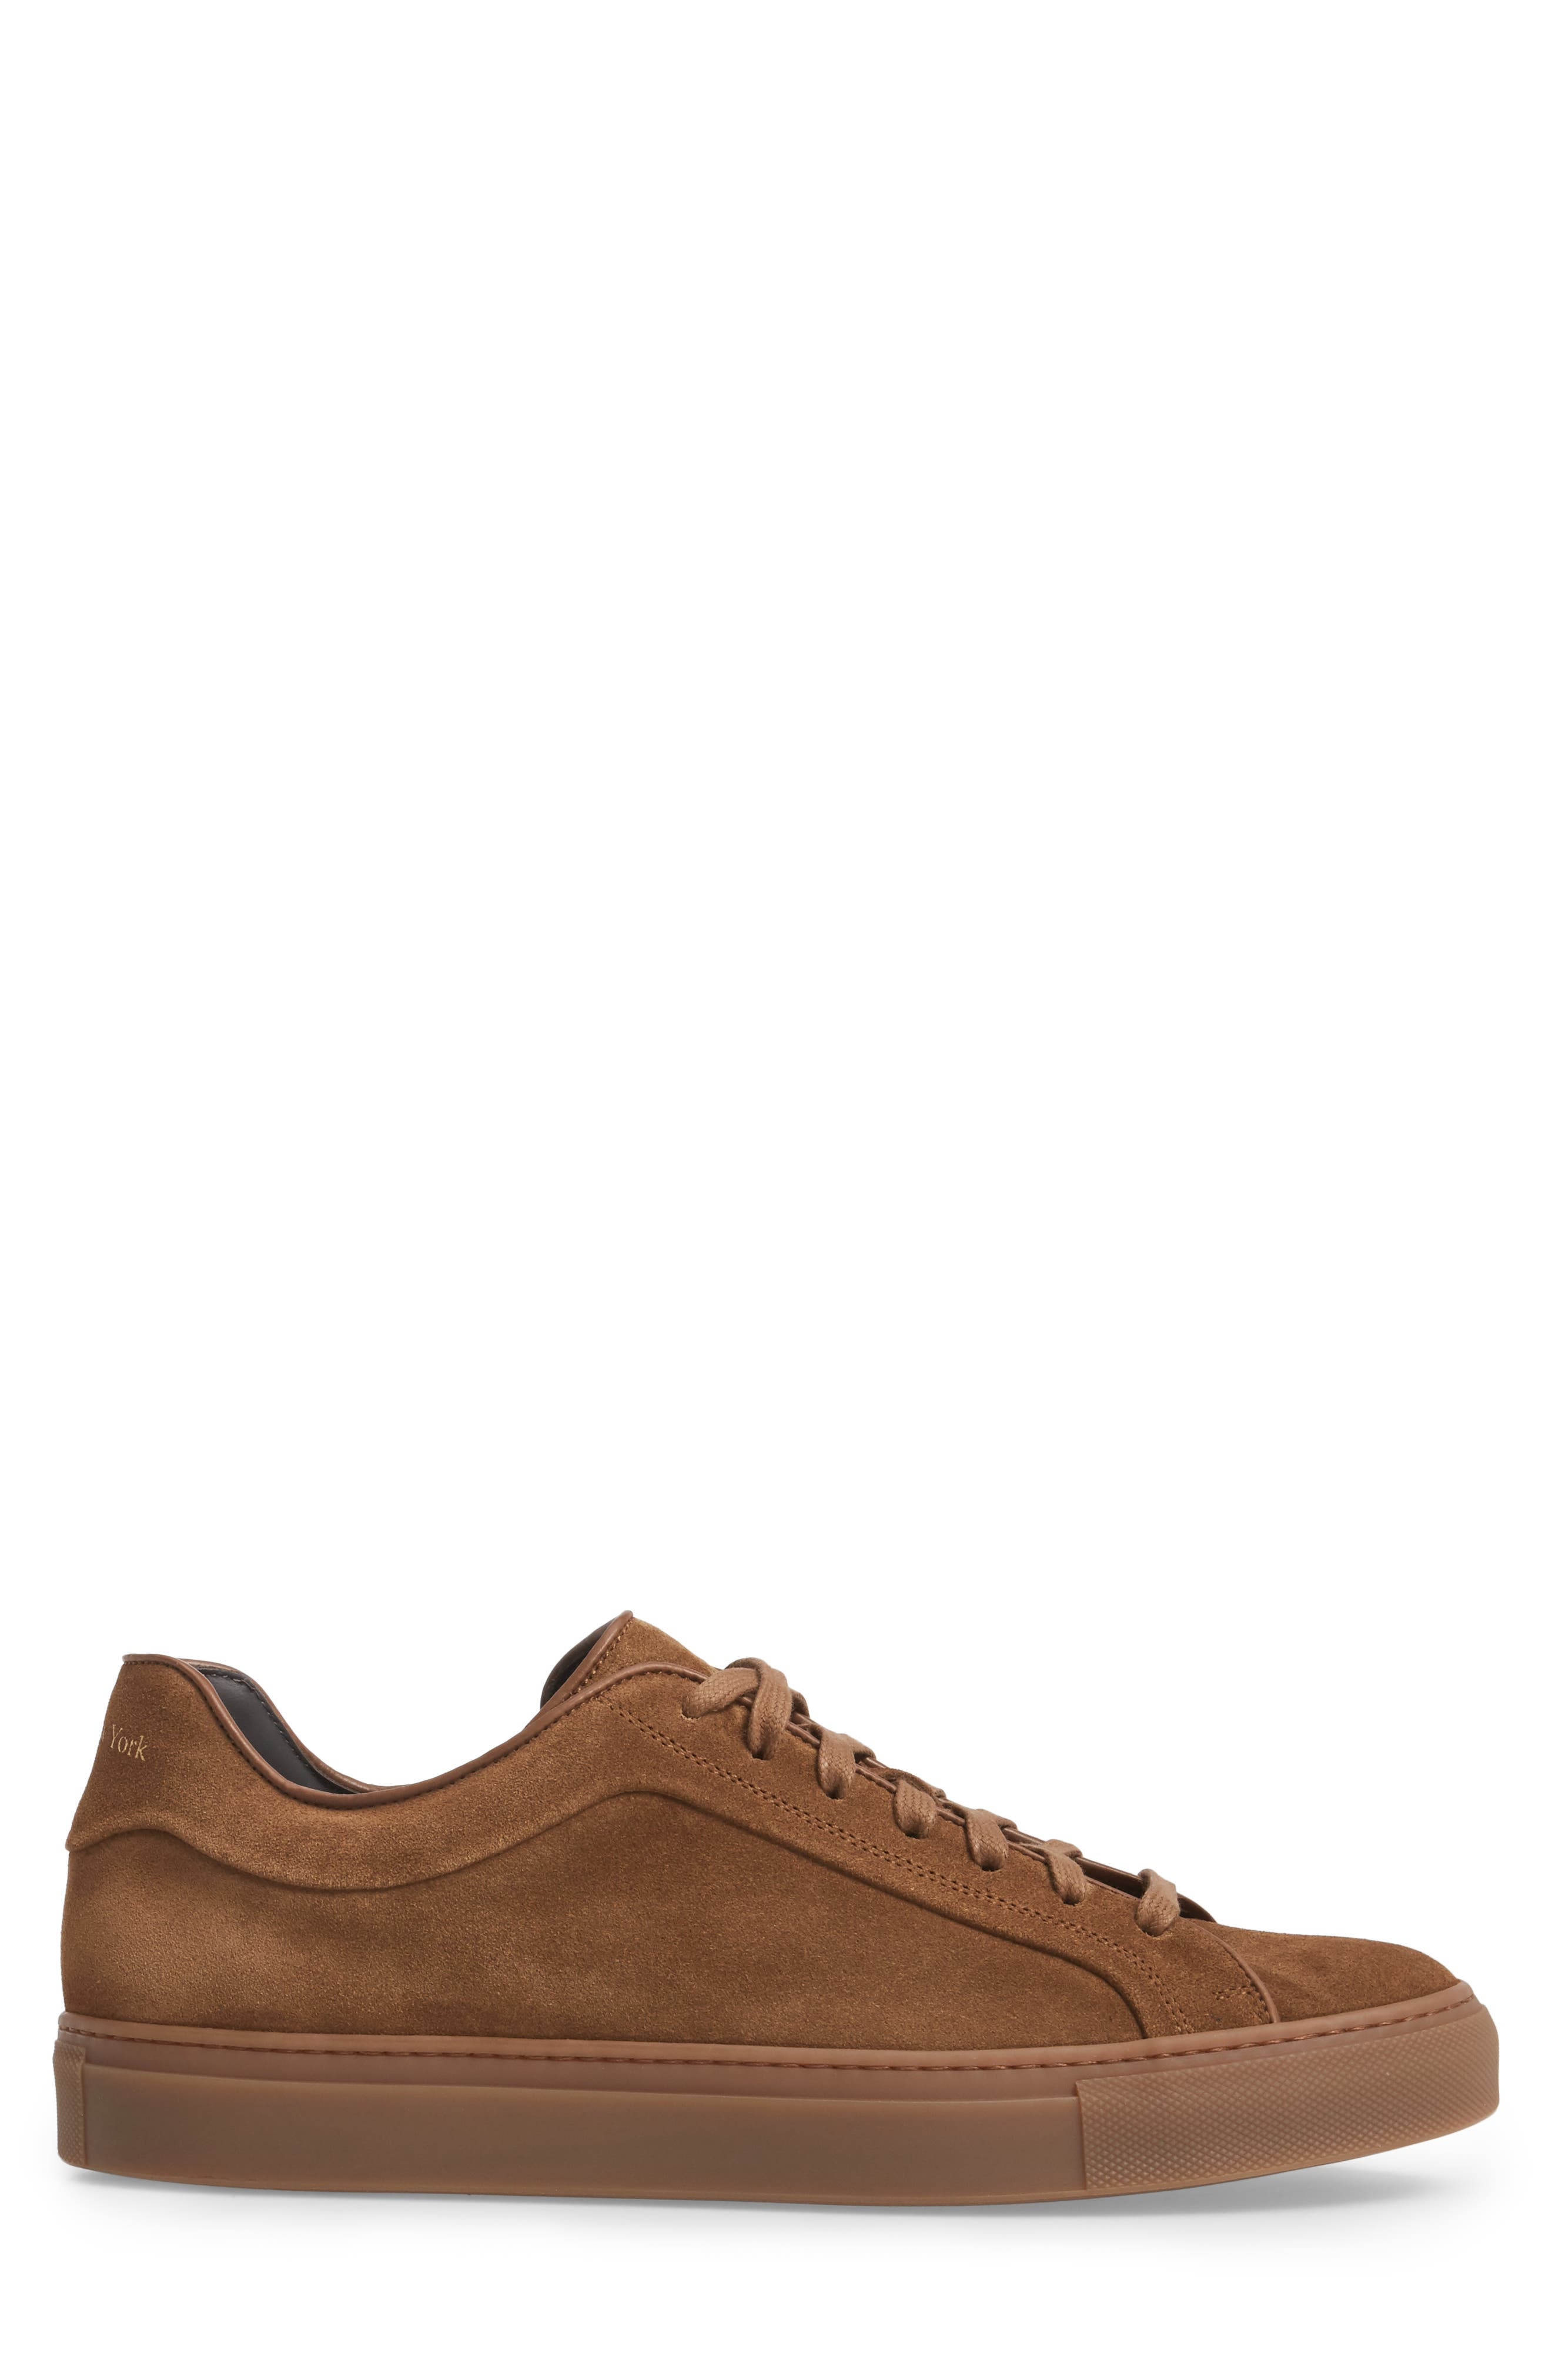 Marshall Sneaker,                             Alternate thumbnail 3, color,                             Brown Suede Leather